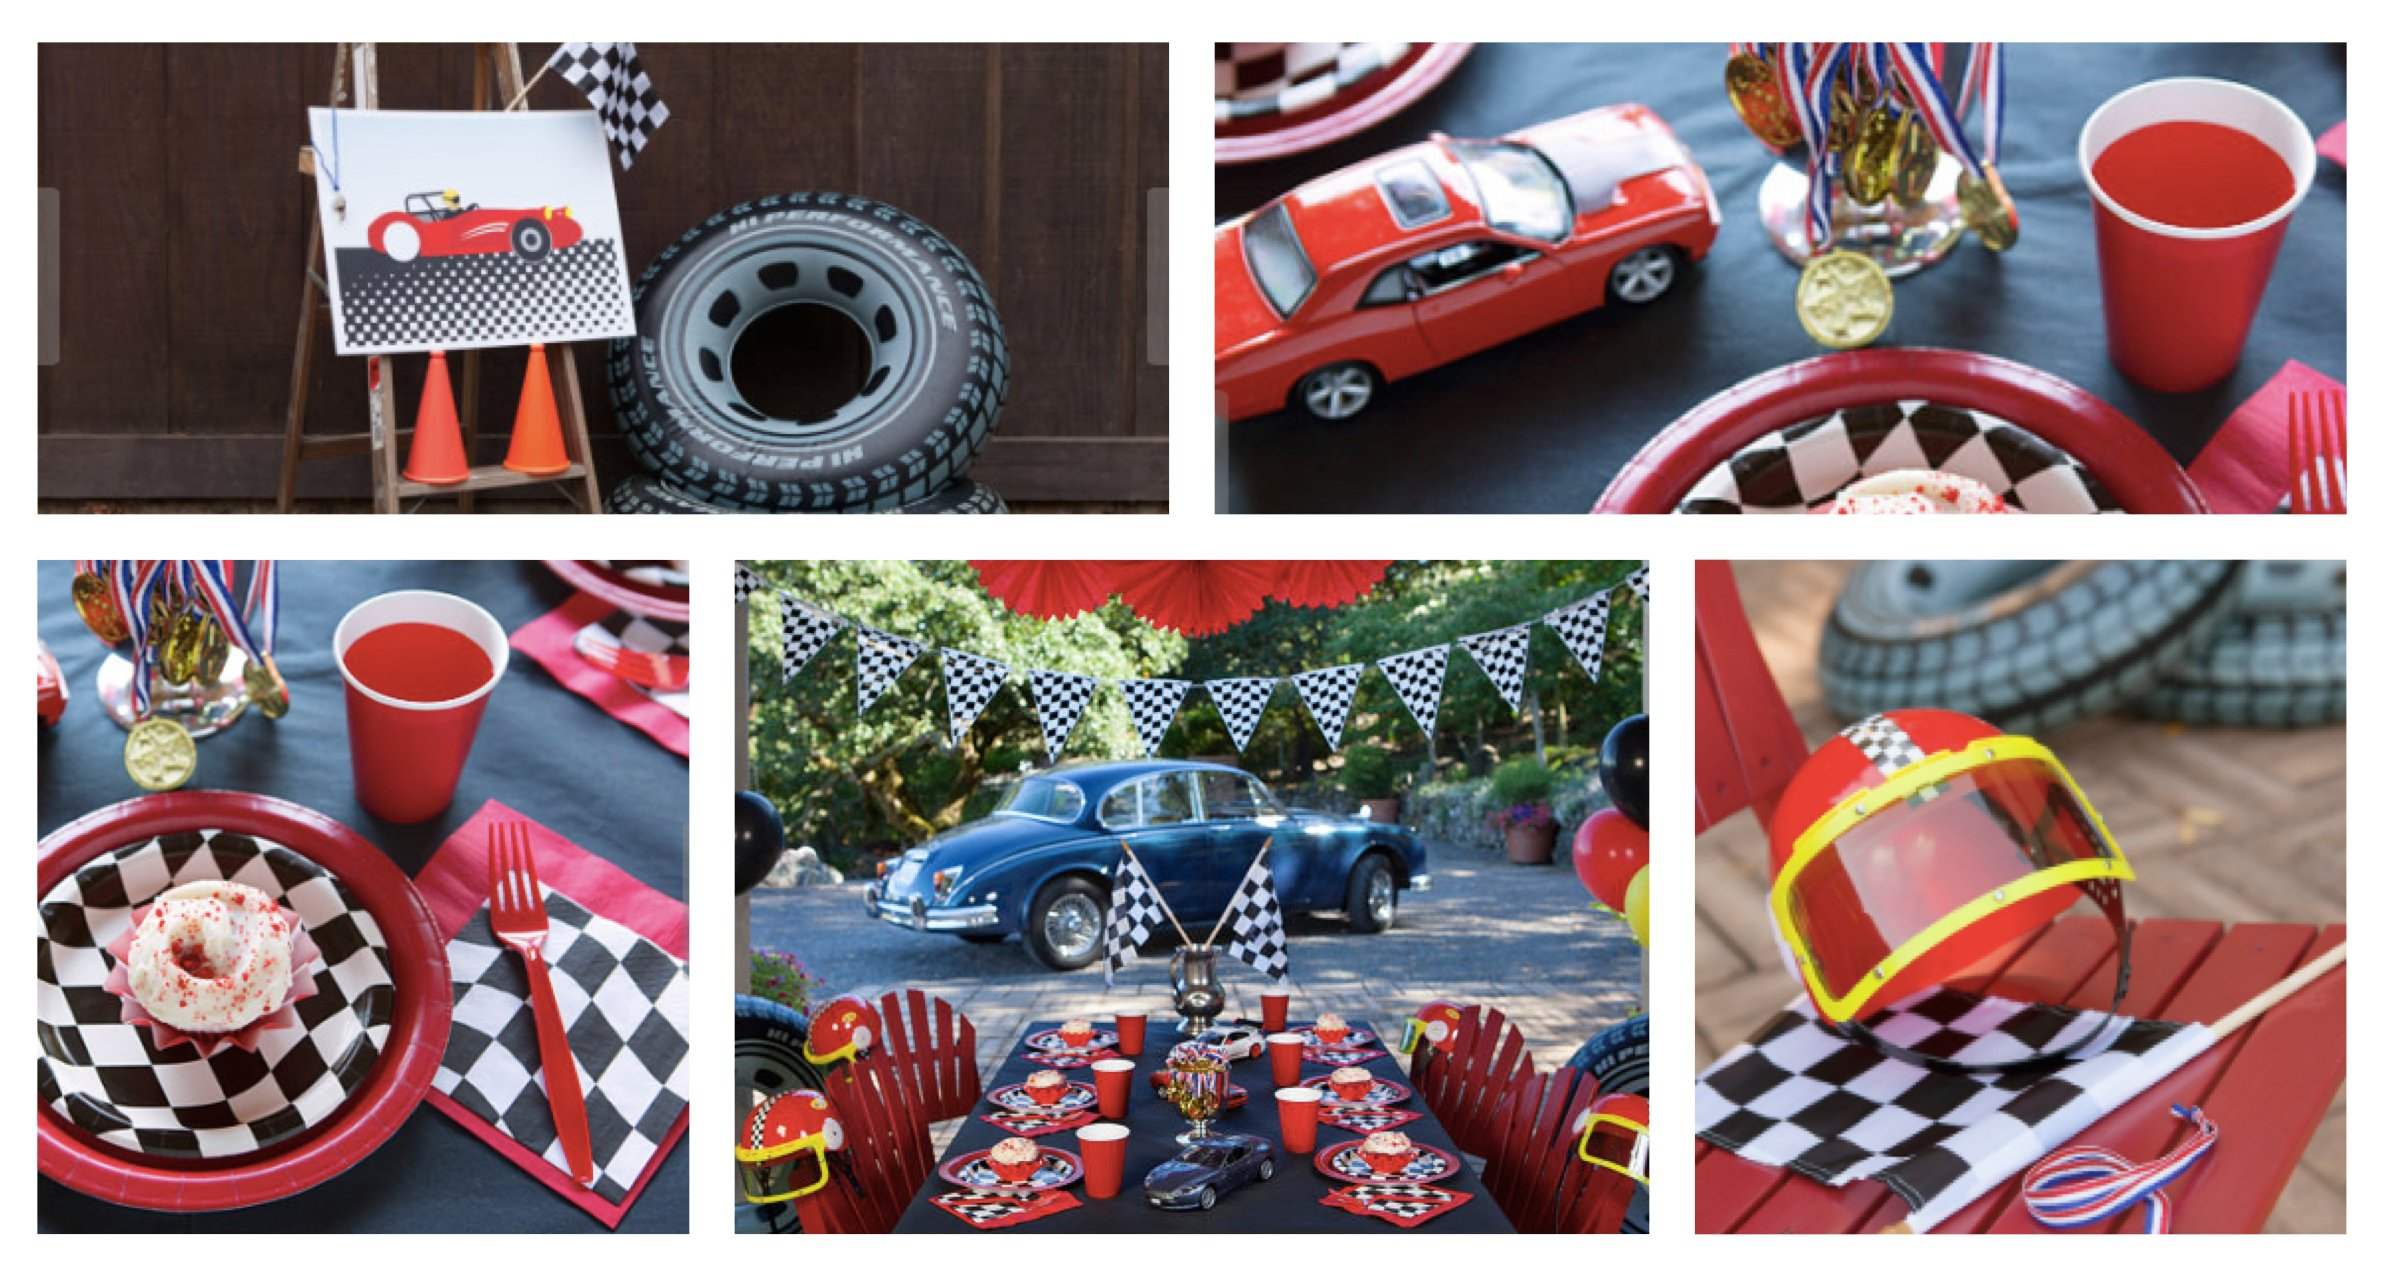 Racecar Birthday Party - Complete Package